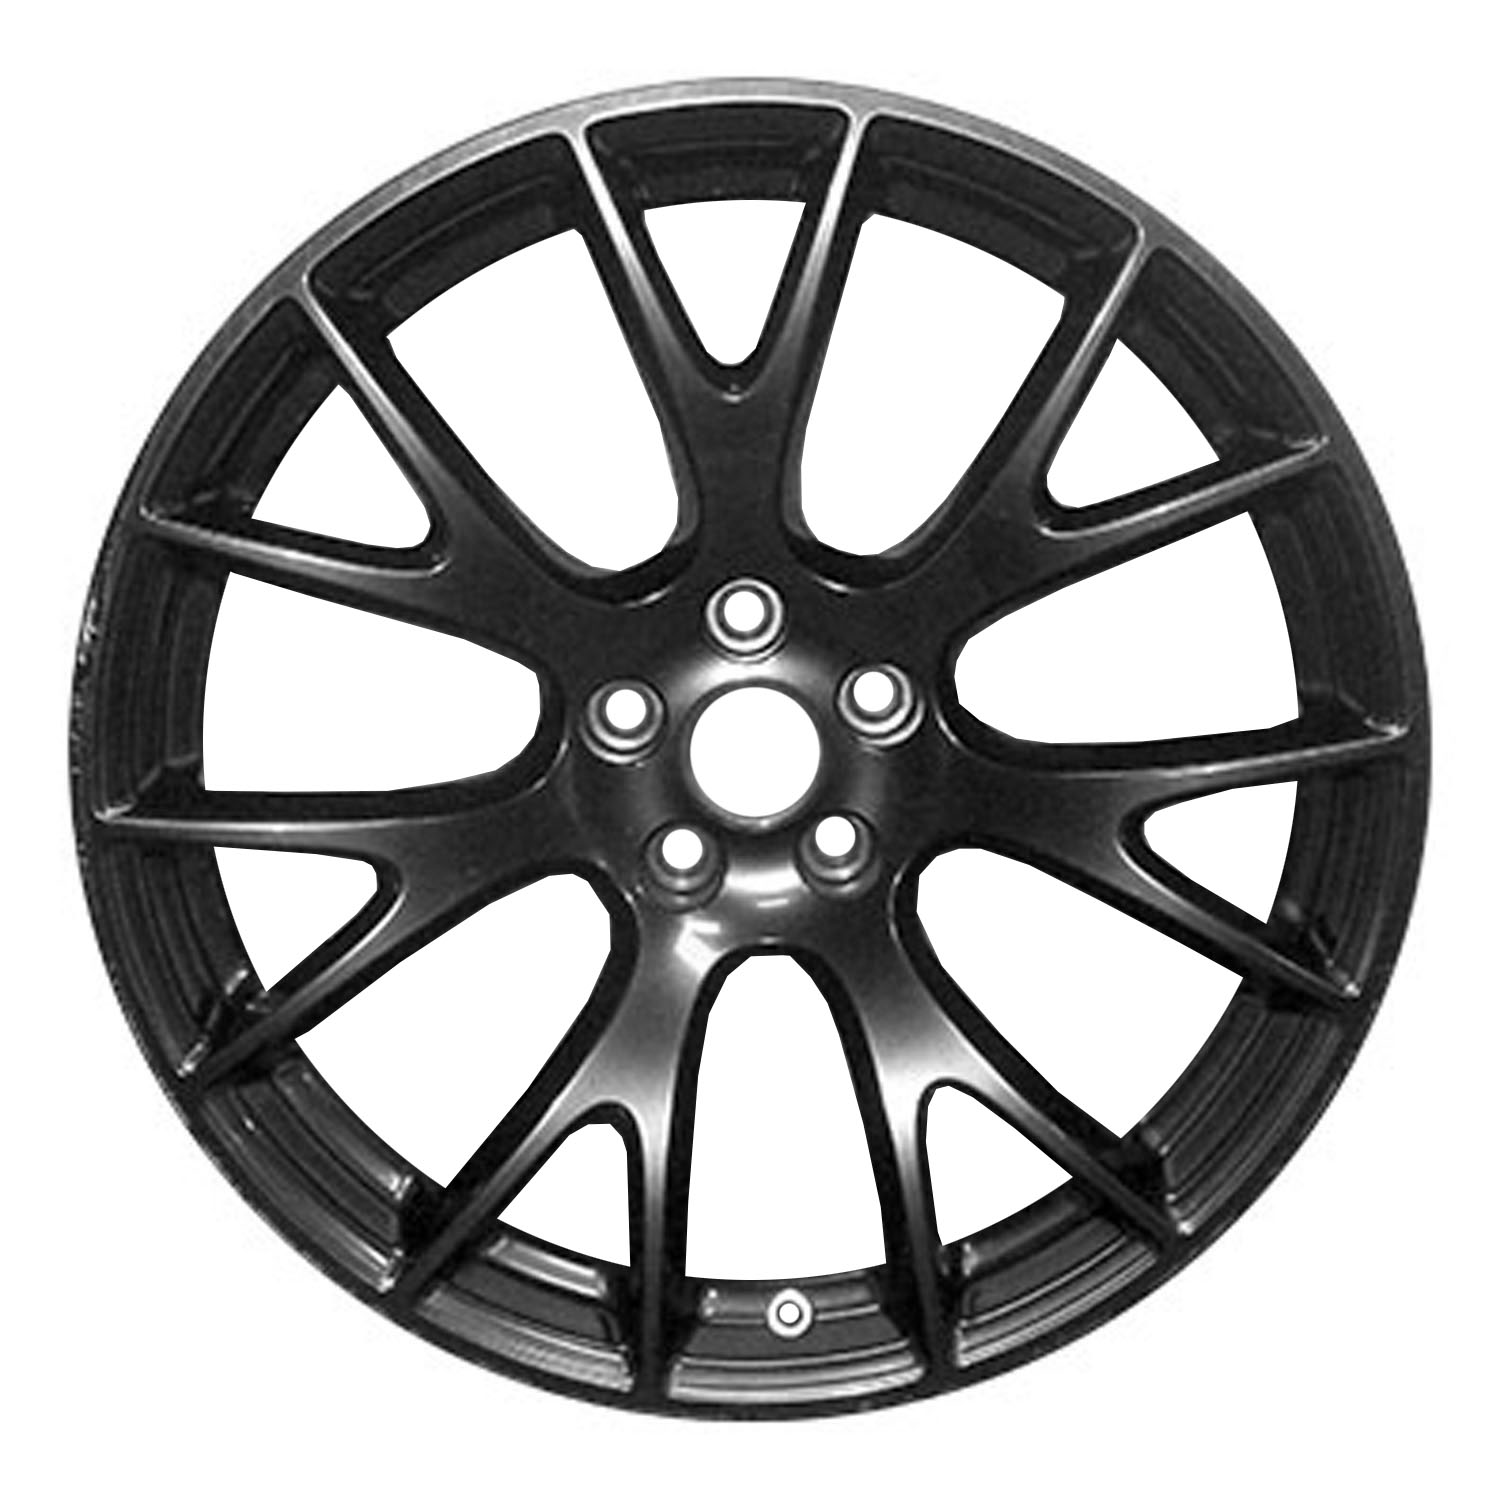 02528 oem reconditioned aluminum wheel 20x9 5 fits 2015 2018 dodge Dodge Challenger Rallye Redline 02528 oem reconditioned aluminum wheel 20x9 5 fits 2015 2018 dodge challenger